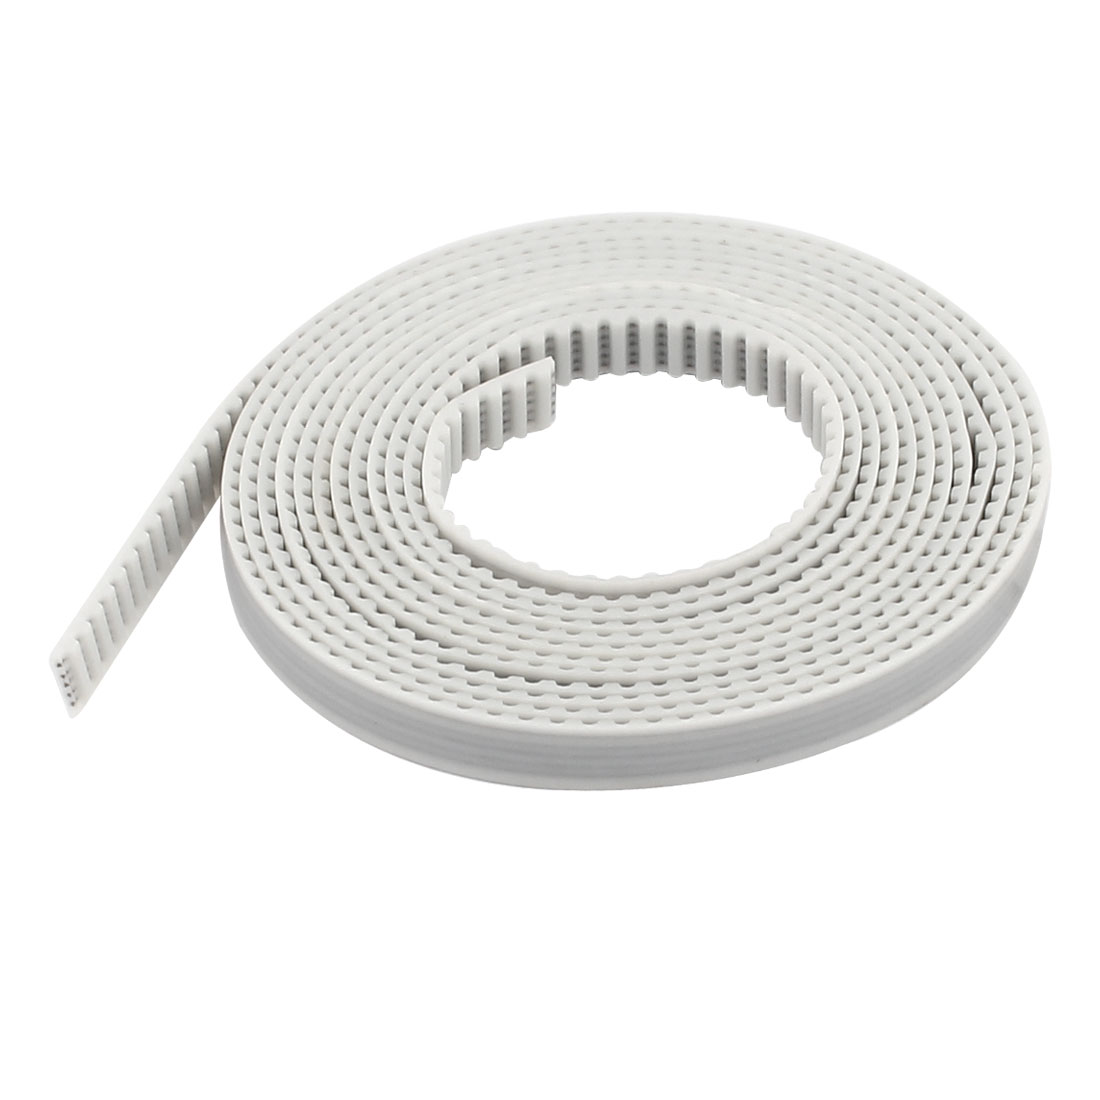 T2.5-6 2Meter 6mm Wide 2.5mm Pitch Open End Timing Belt for 3D Printers